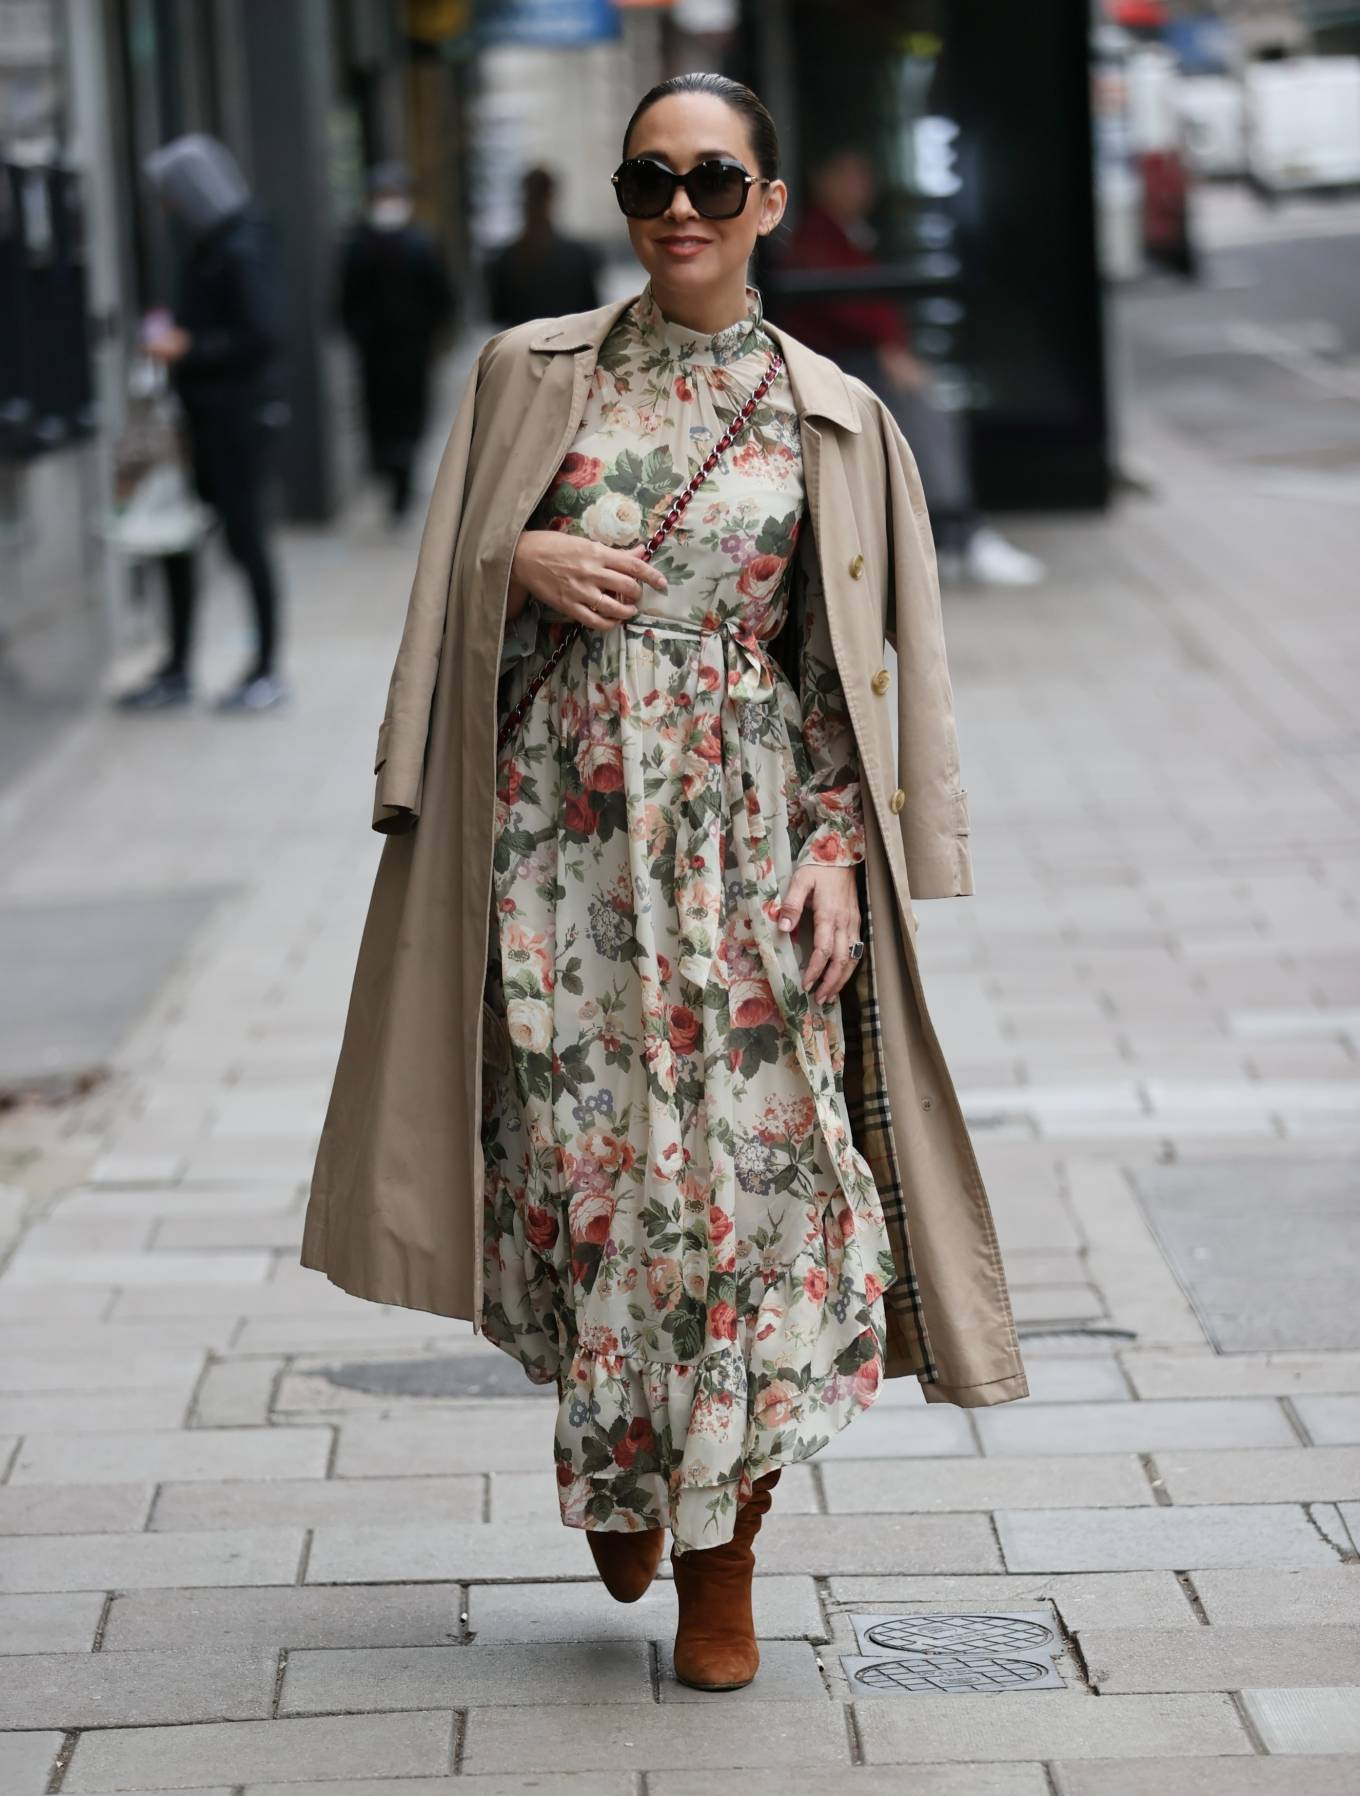 Myleene Klass - In floral dress at Smooth radio in London